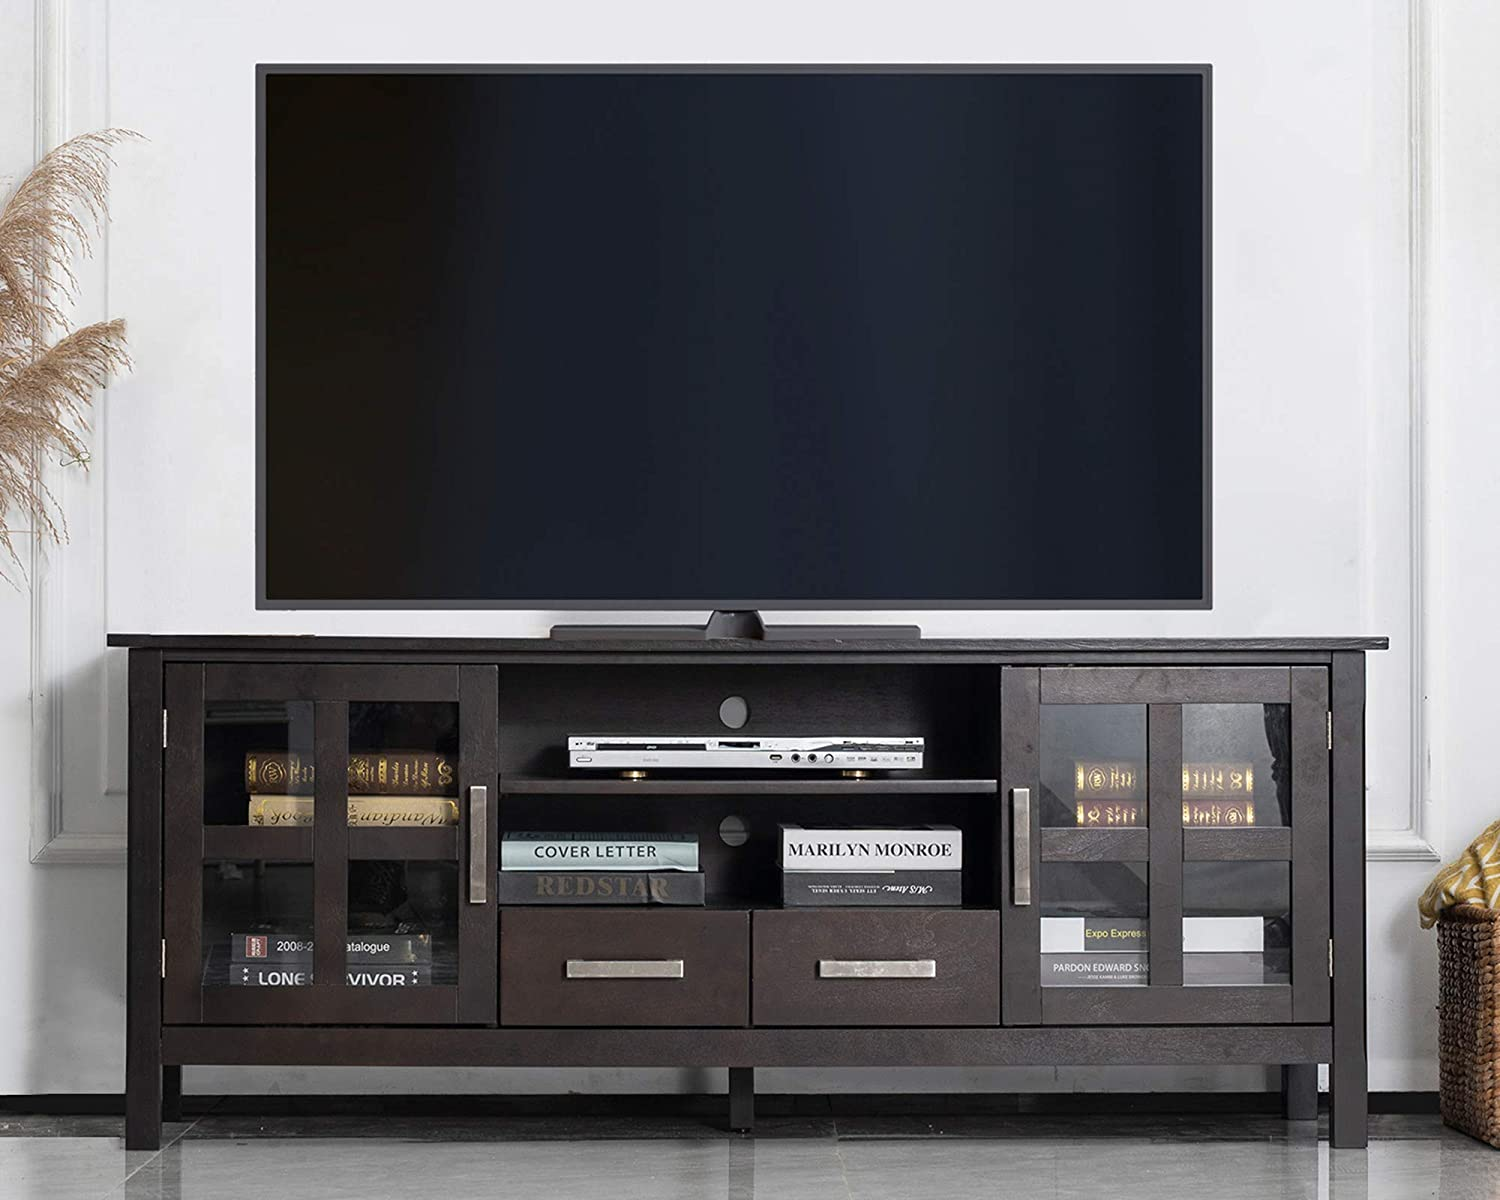 CHADIOR Wood TV Stand for TVs up to 65 Inch Farmhouse TV Entertainment Center with Storage Shelves and Cabinets with Glass Doors 60 inch Wide Long TV Media Stand TV Console Table, Espresso